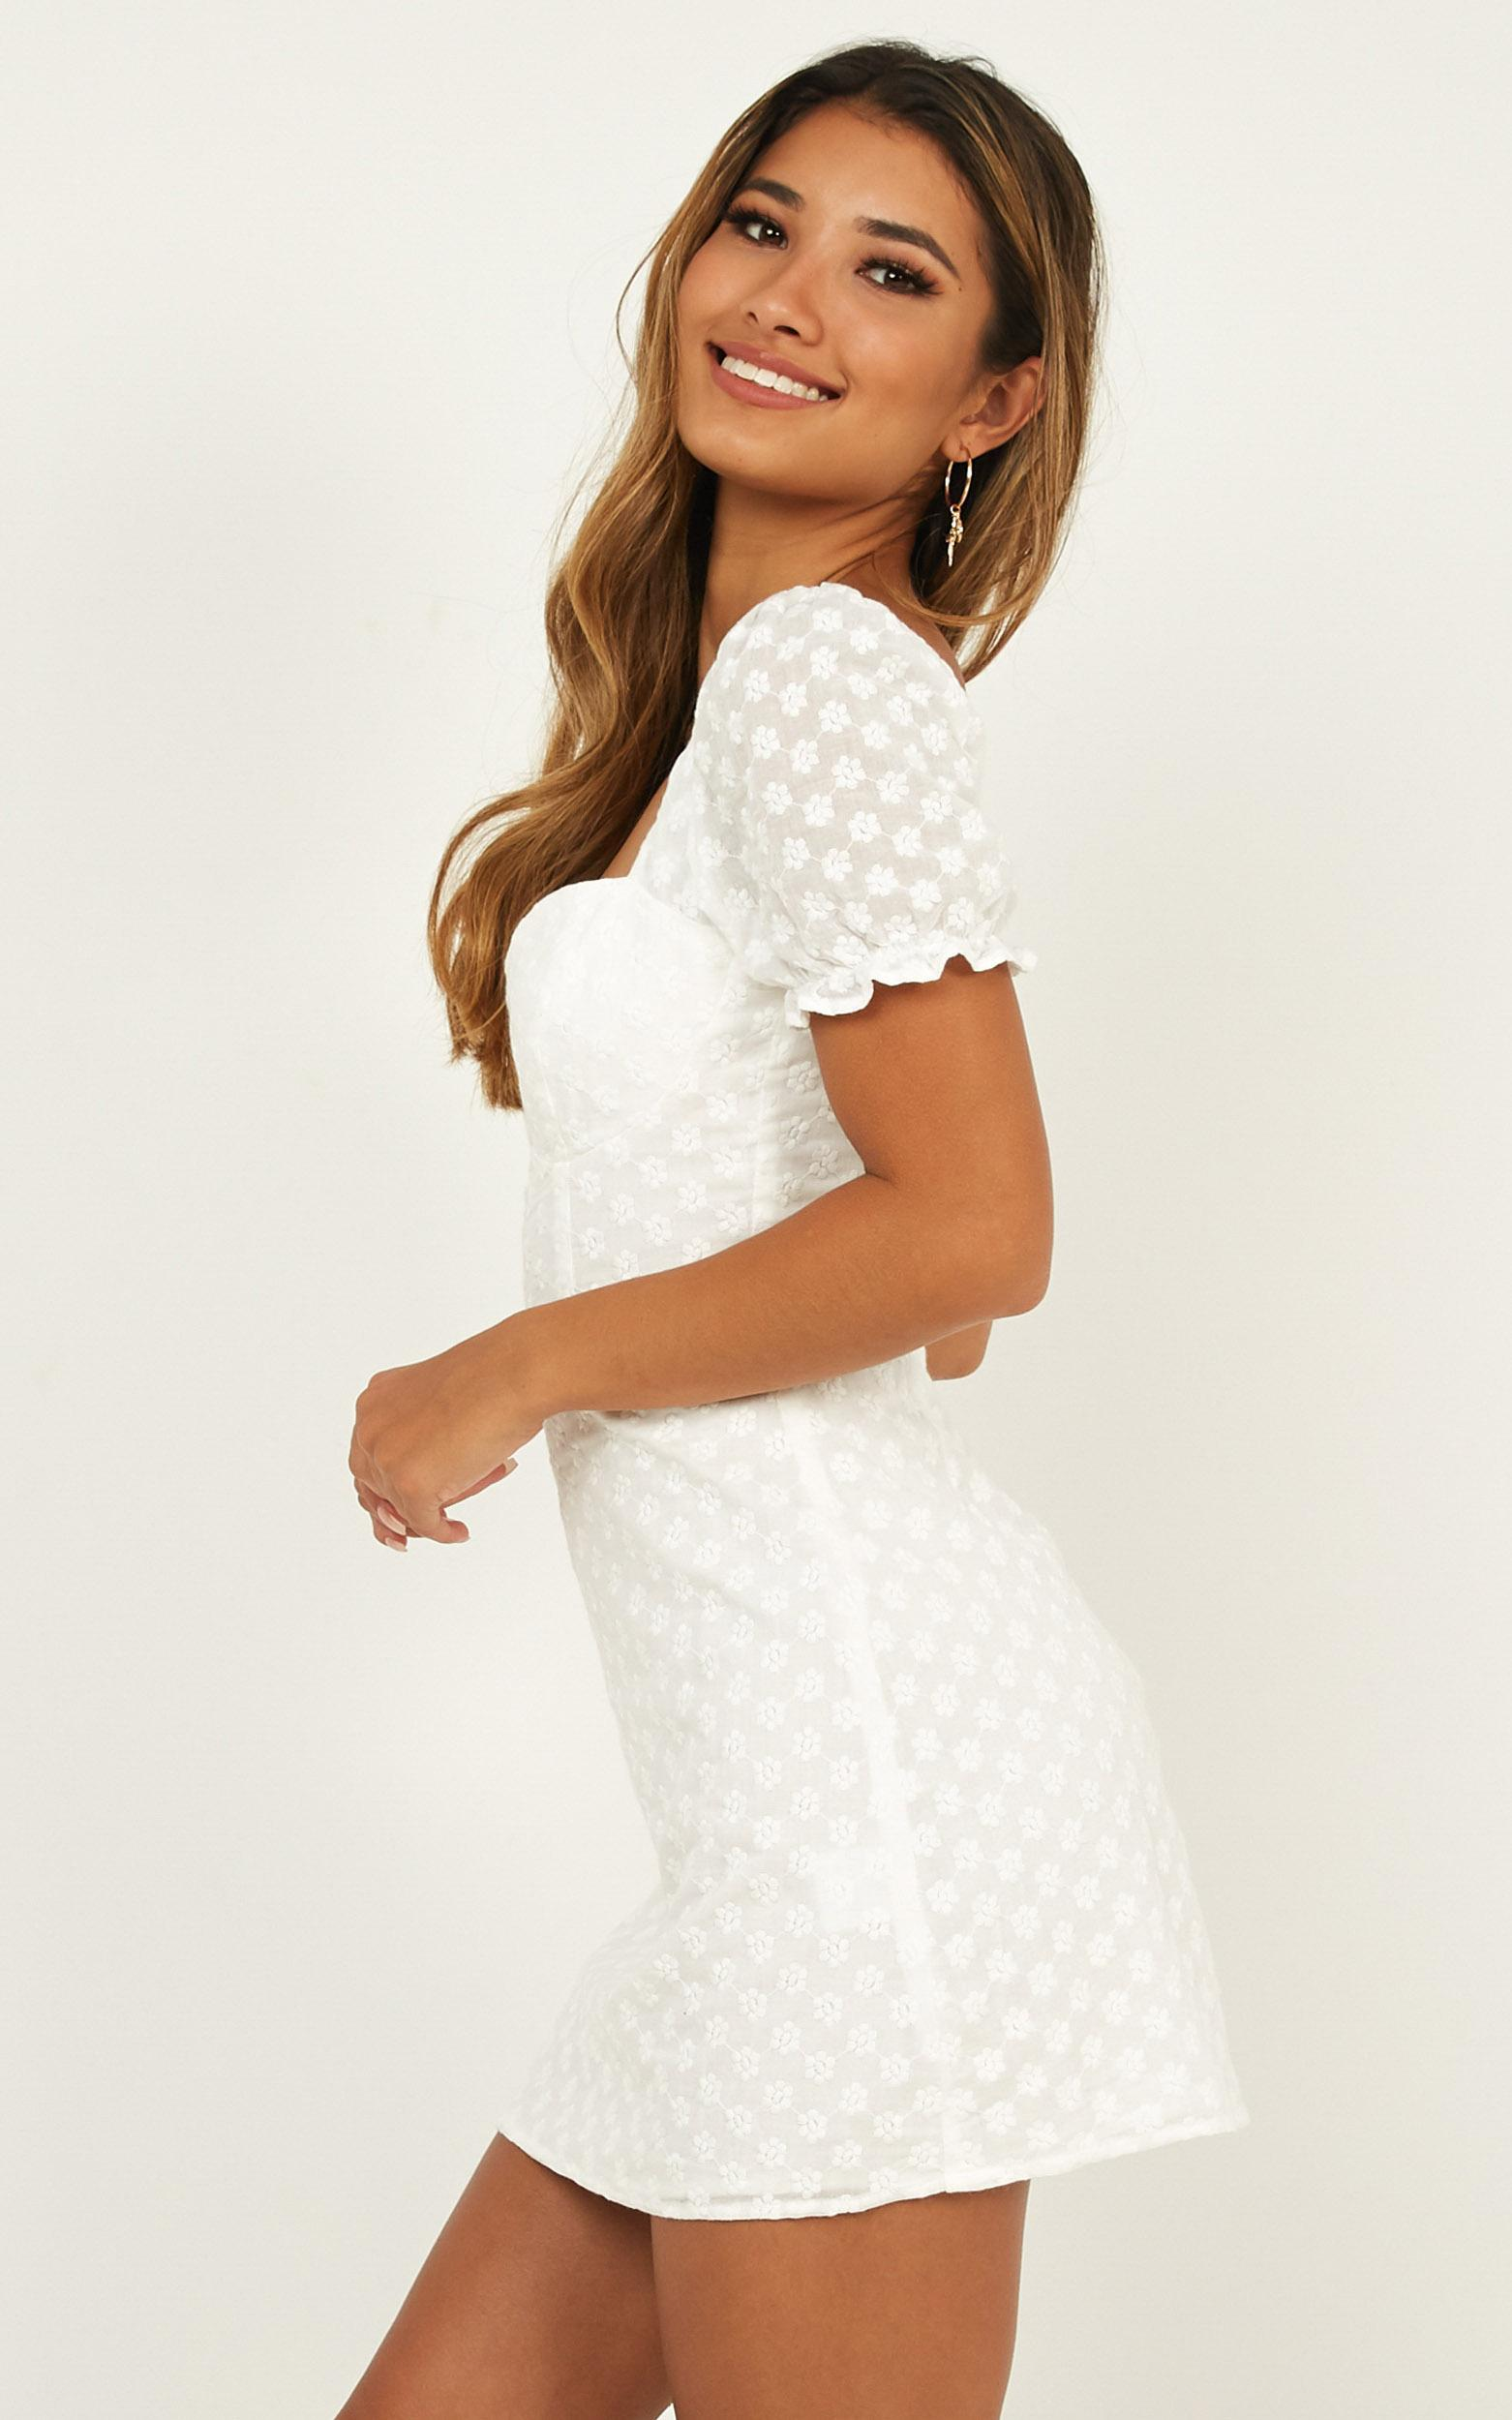 You Earned It Dress In white lace - 12 (L), White, hi-res image number null